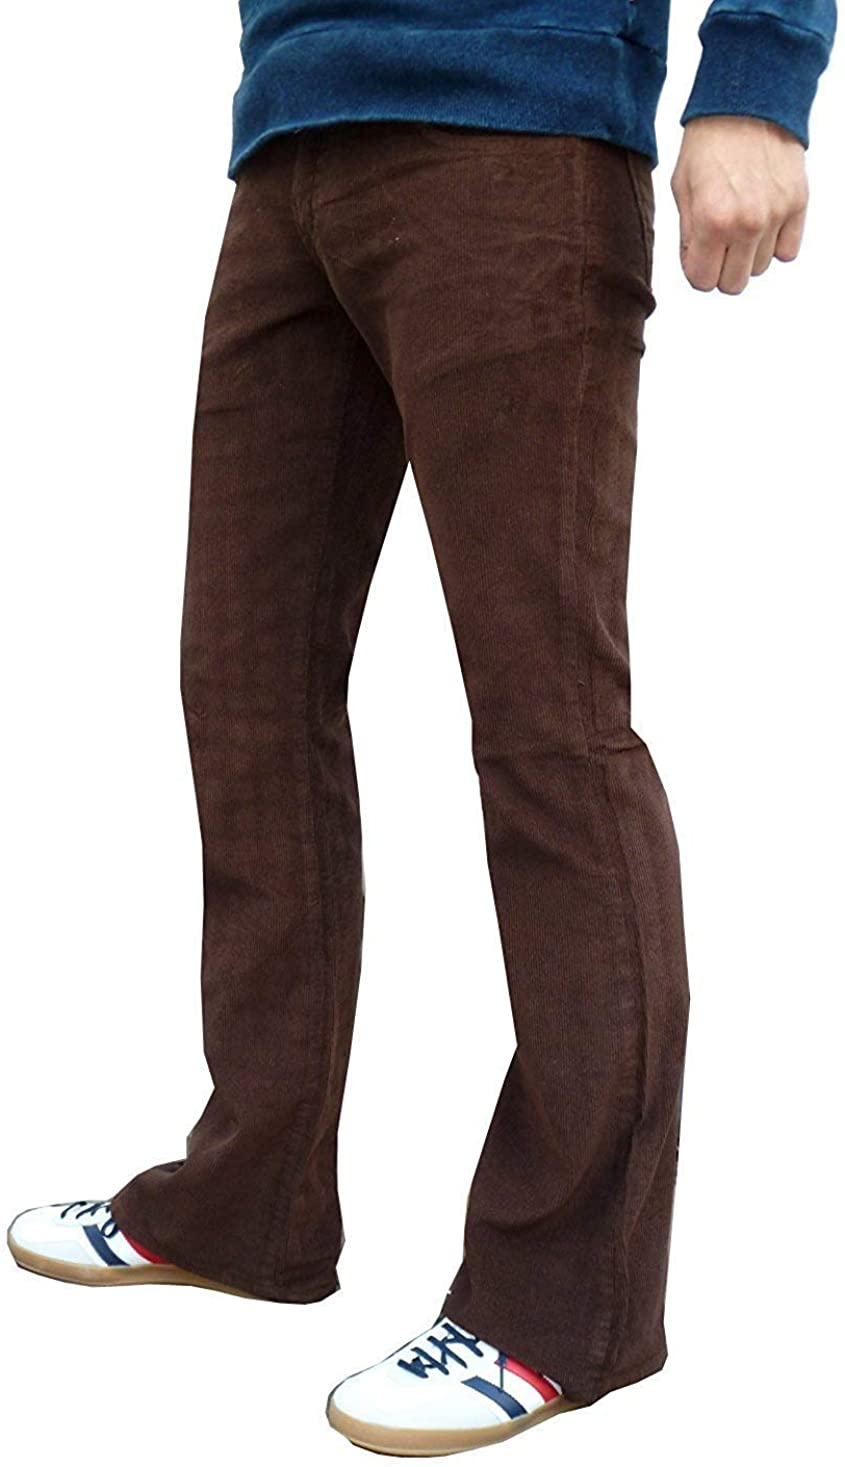 Hippie Pants, Jeans, Bell Bottoms, Palazzo, Yoga Mens Brown Bootcut Flares Corduroy Indie Retro Flared Pants £32.99 AT vintagedancer.com